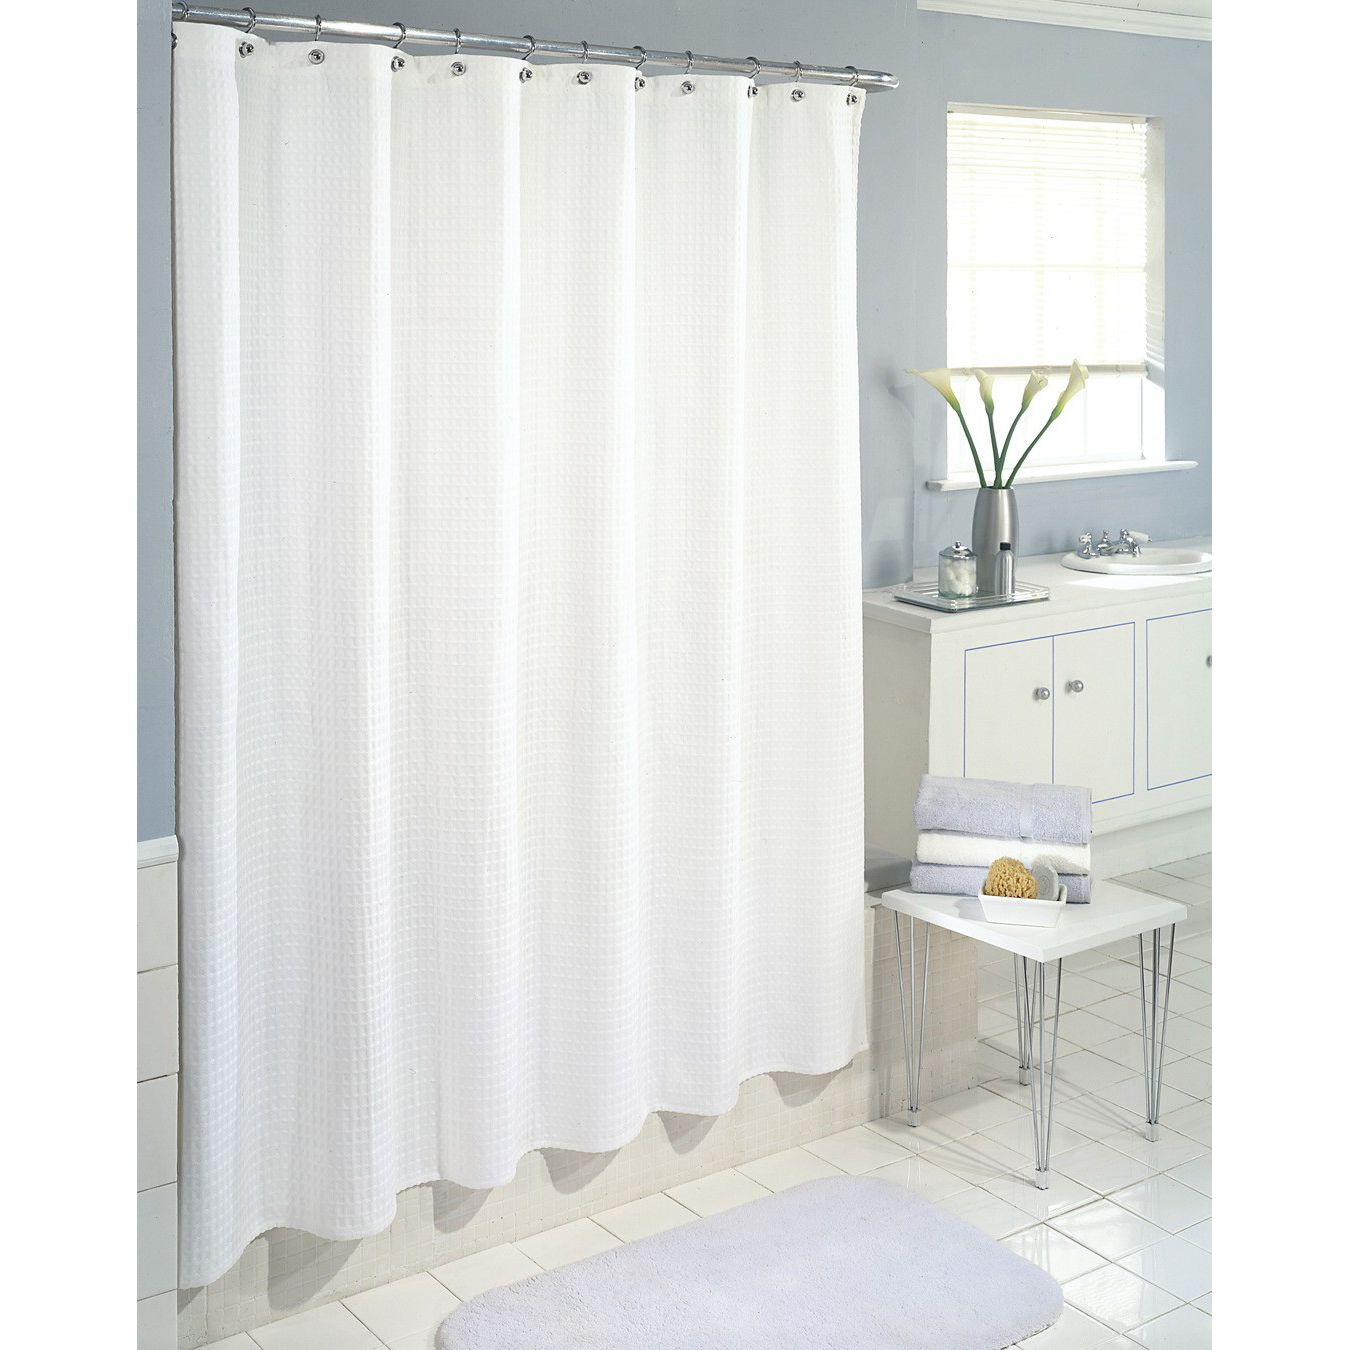 white shower curtain bathroom. Colormate Waffle Wave Fabric Shower Curtain - White | Shop Your Way: Online Shopping \u0026 Earn Points On Tools, Appliances, Electronics More Bathroom Way